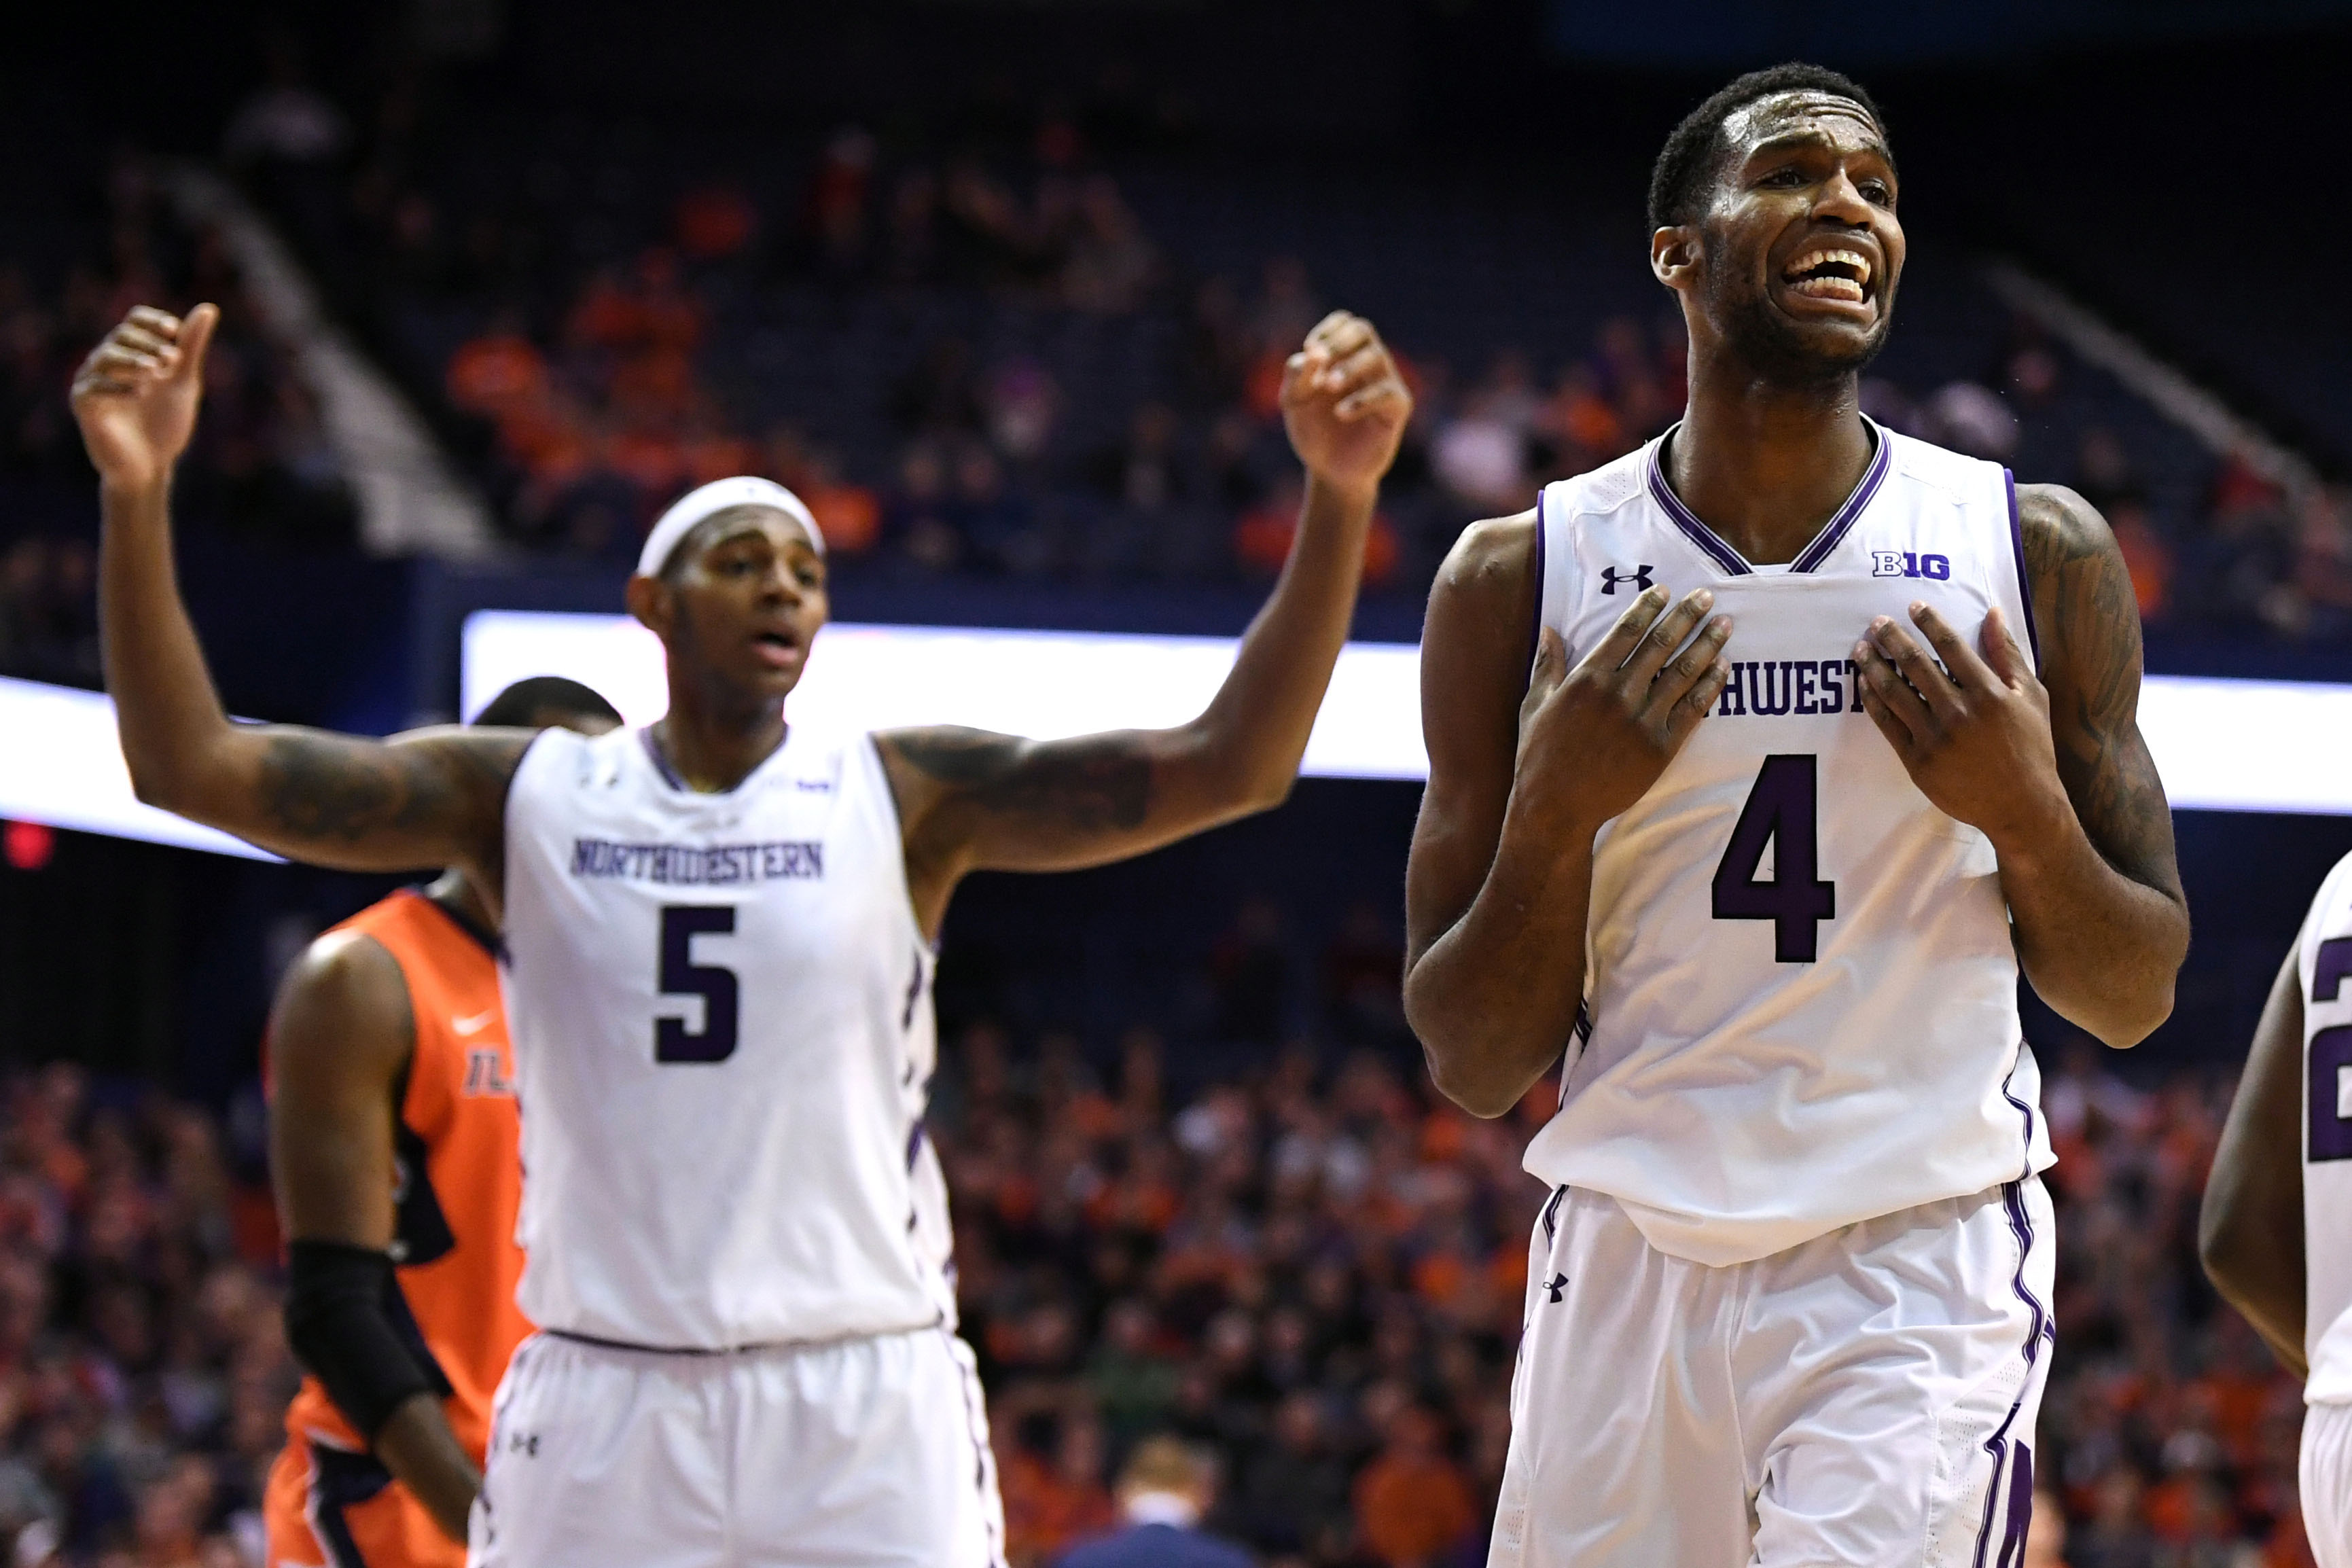 Inside NU a Northwestern Wildcats munity